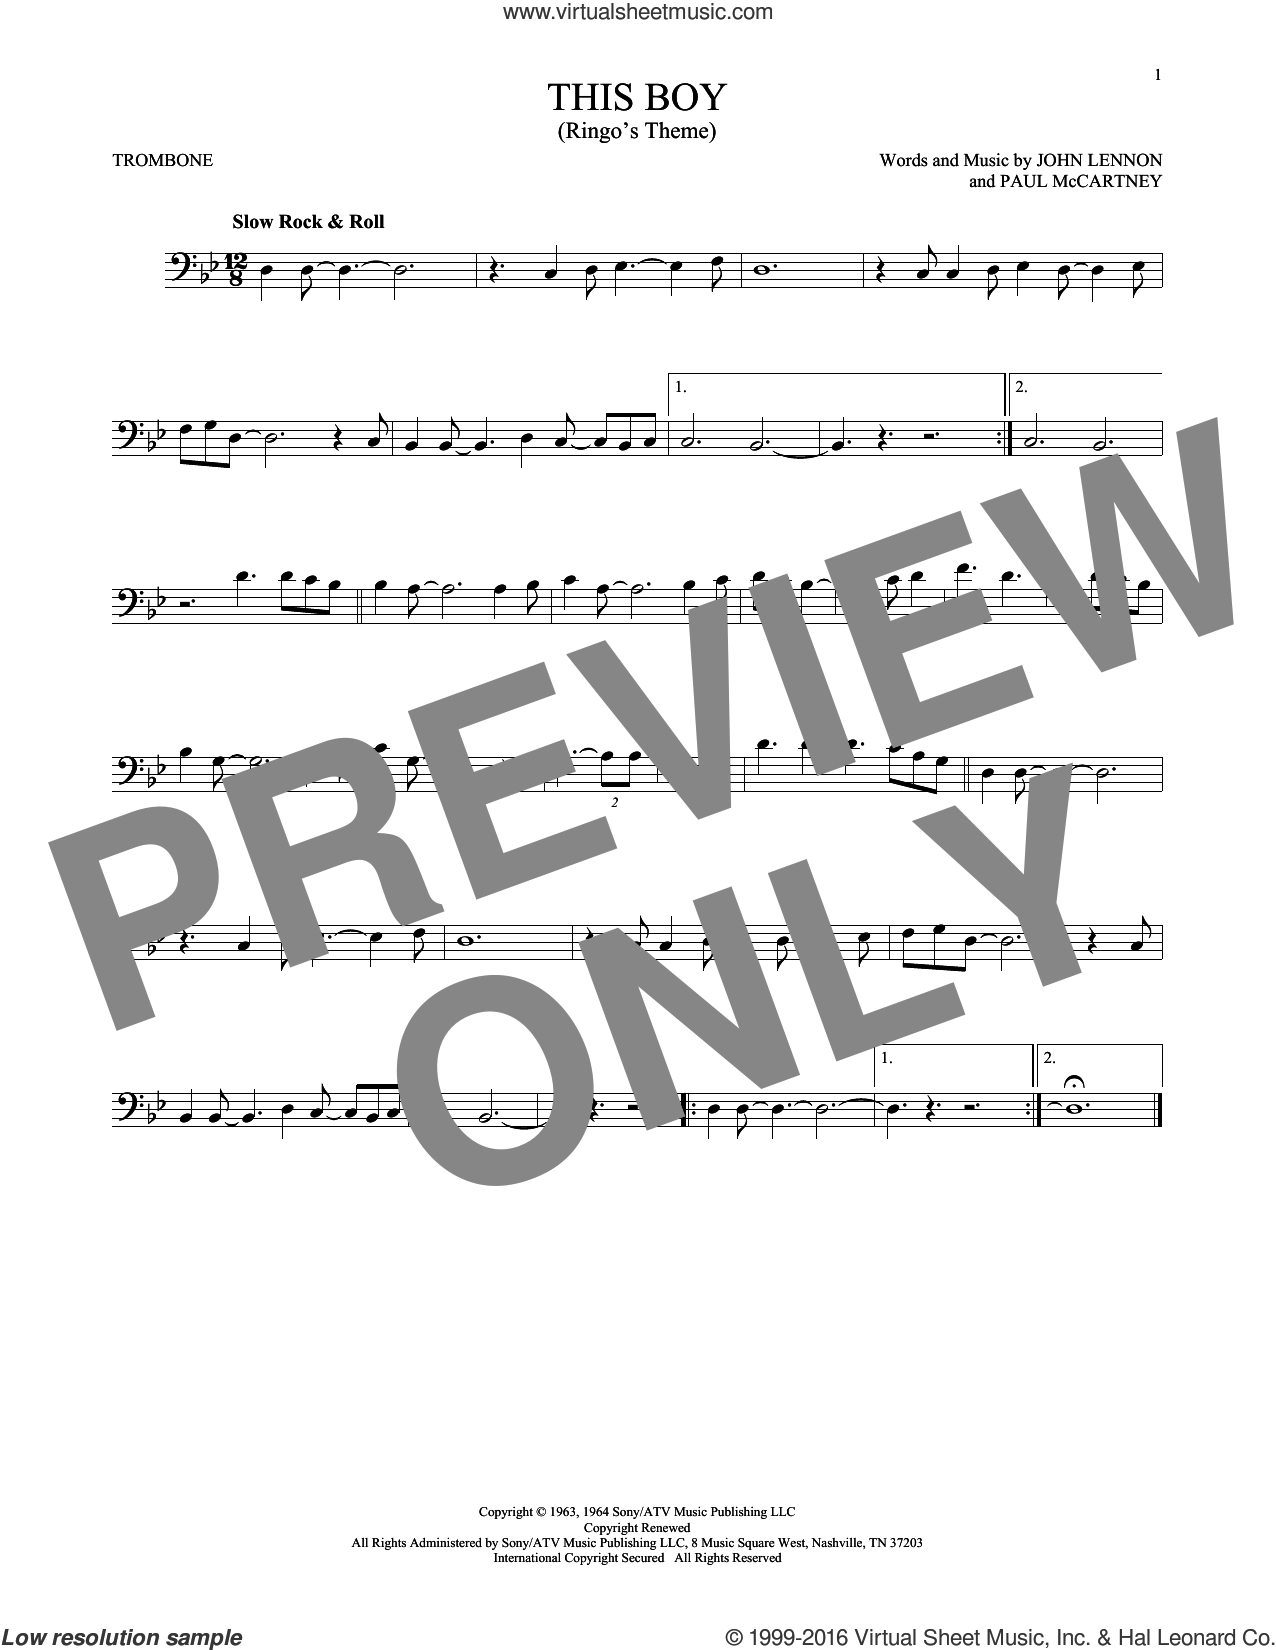 This Boy (Ringo's Theme) sheet music for trombone solo by Paul McCartney, The Beatles and John Lennon. Score Image Preview.